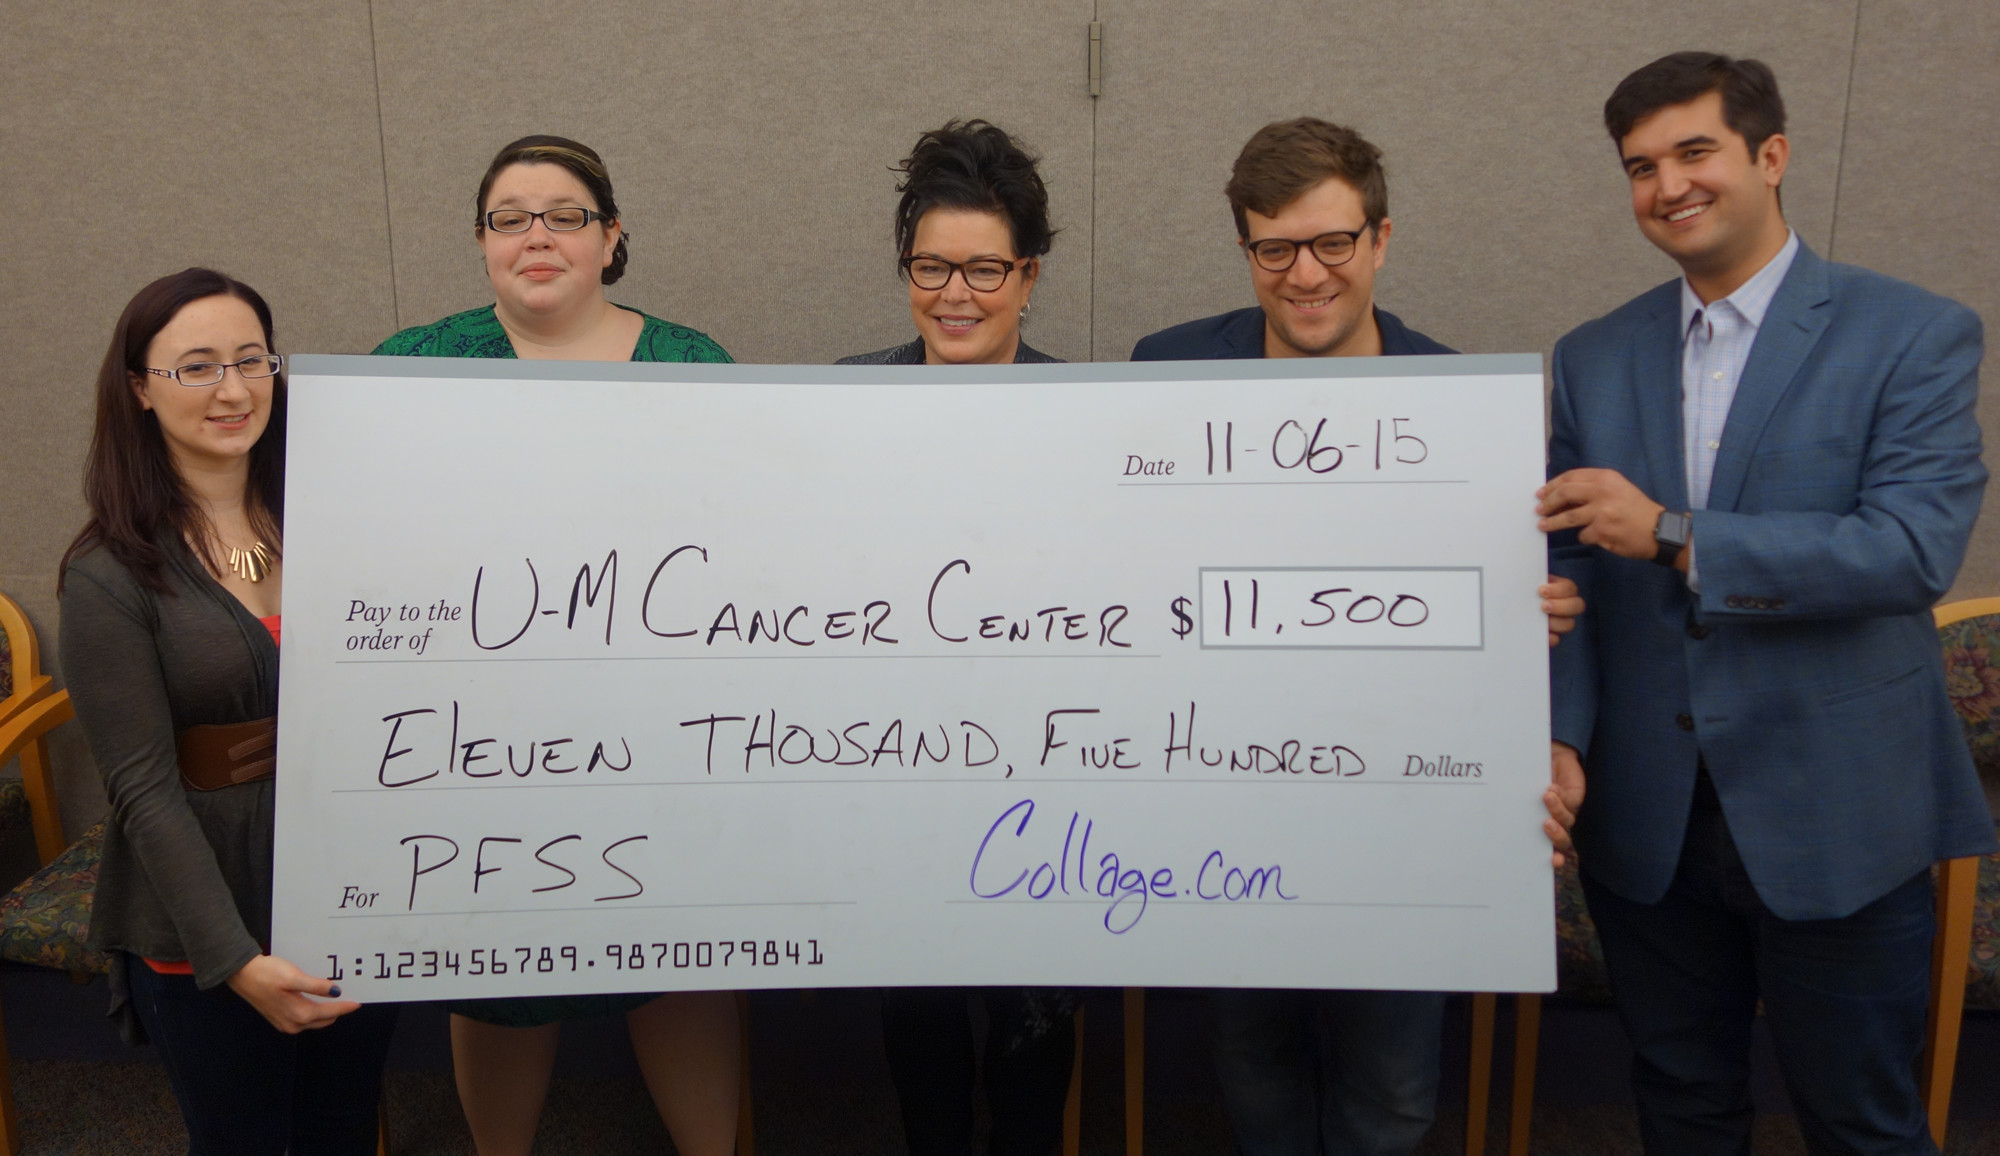 Collage.com donates $11,500 to University of Michigan Cancer Center